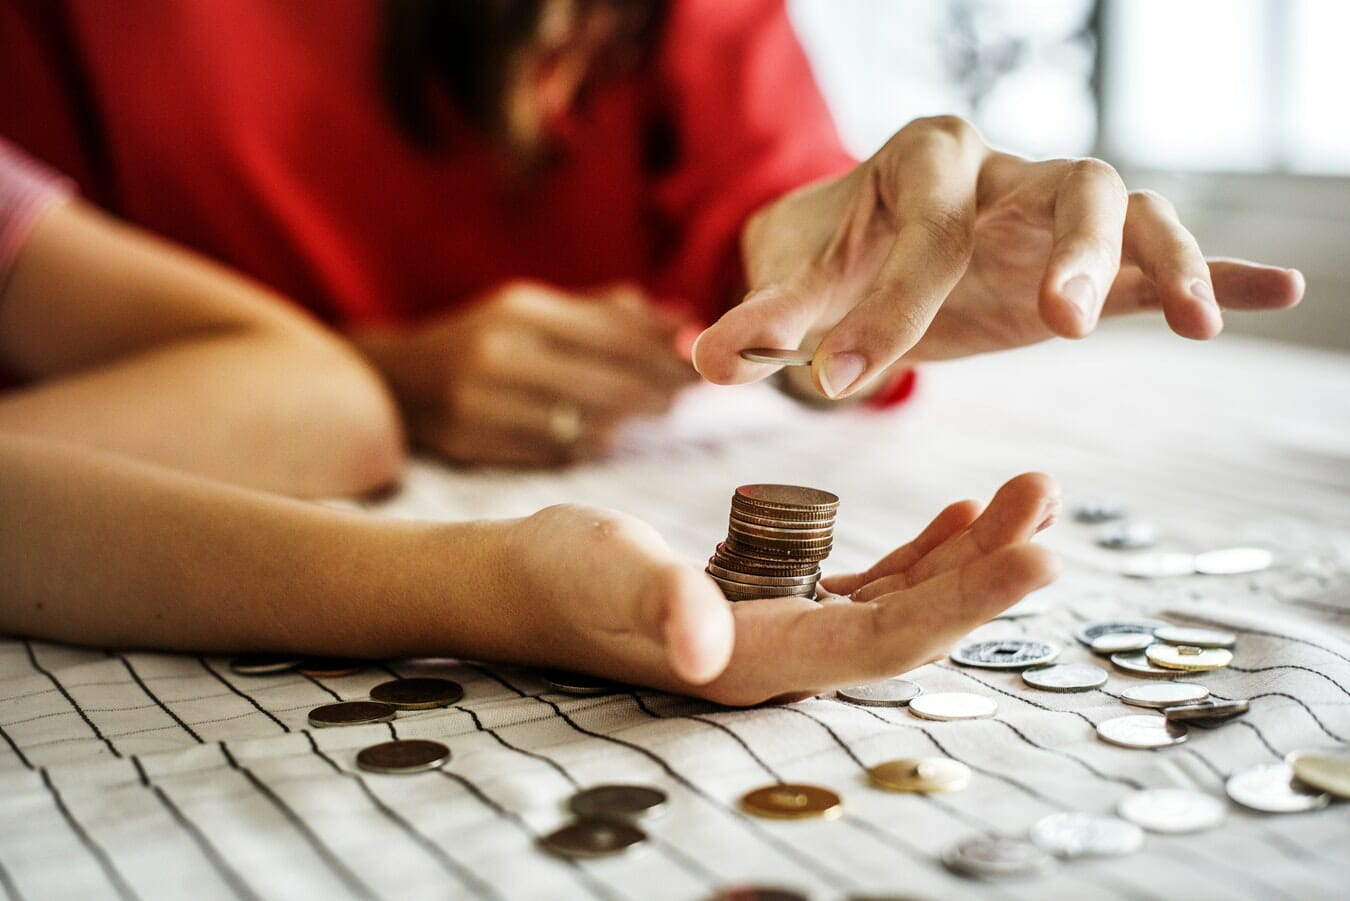 Save money on energy bills don't count pennies